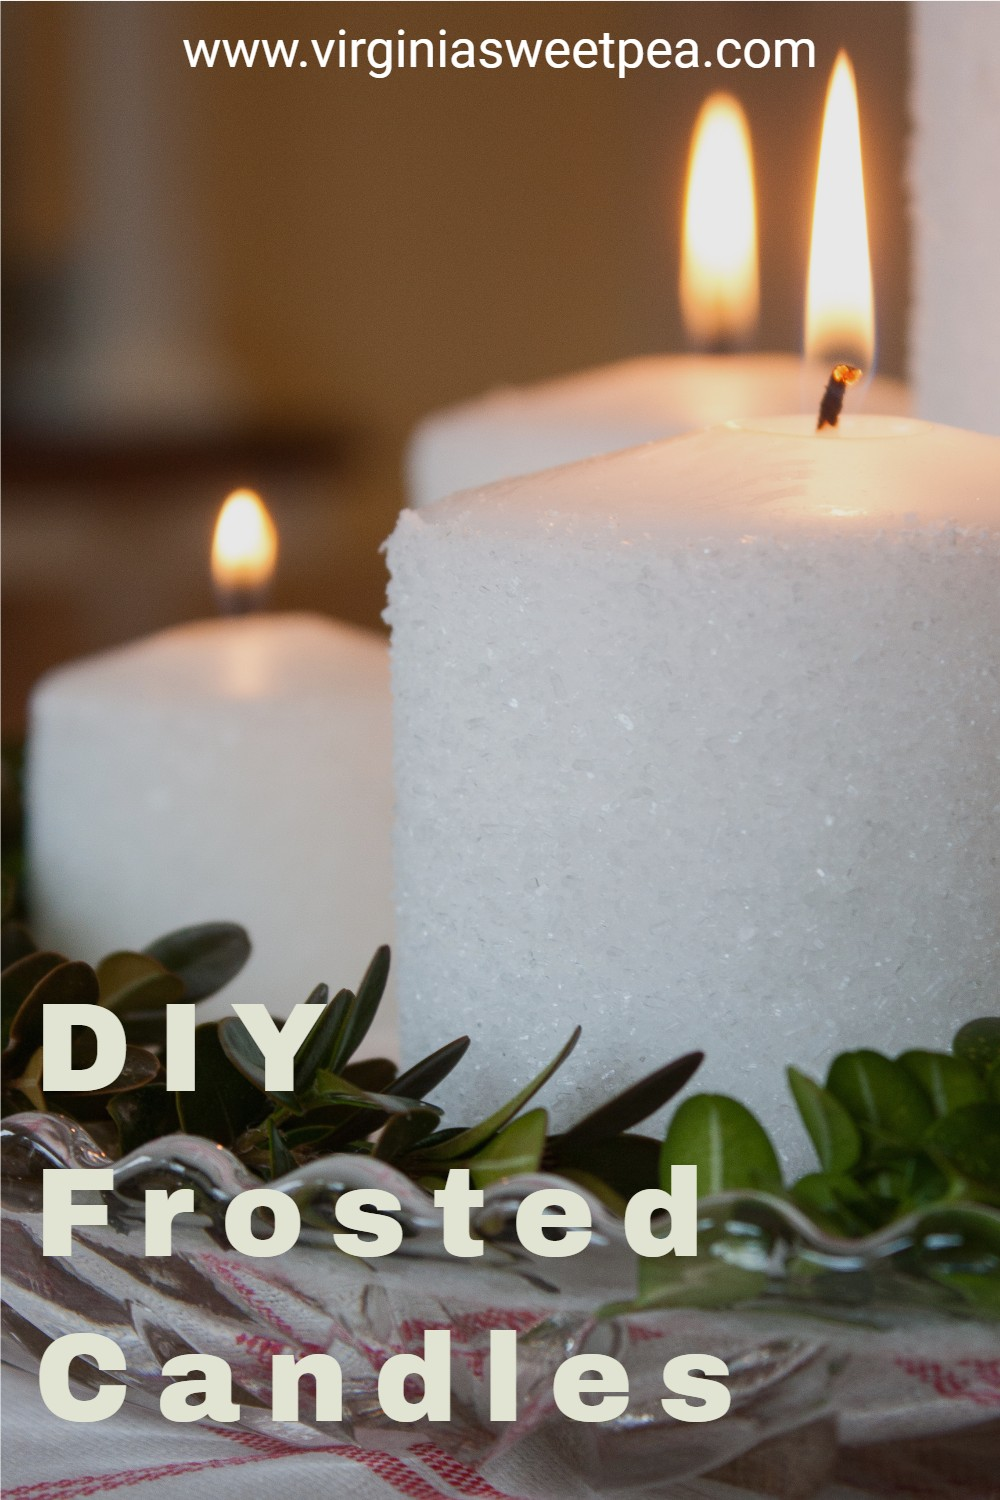 DIY Frosted Candles - Candles rolled in Epsom salt to give them a snow-kissed look are perfect to use for Christmas or winter decorating.  This is easy to make craft looks spectacular! via @spaula